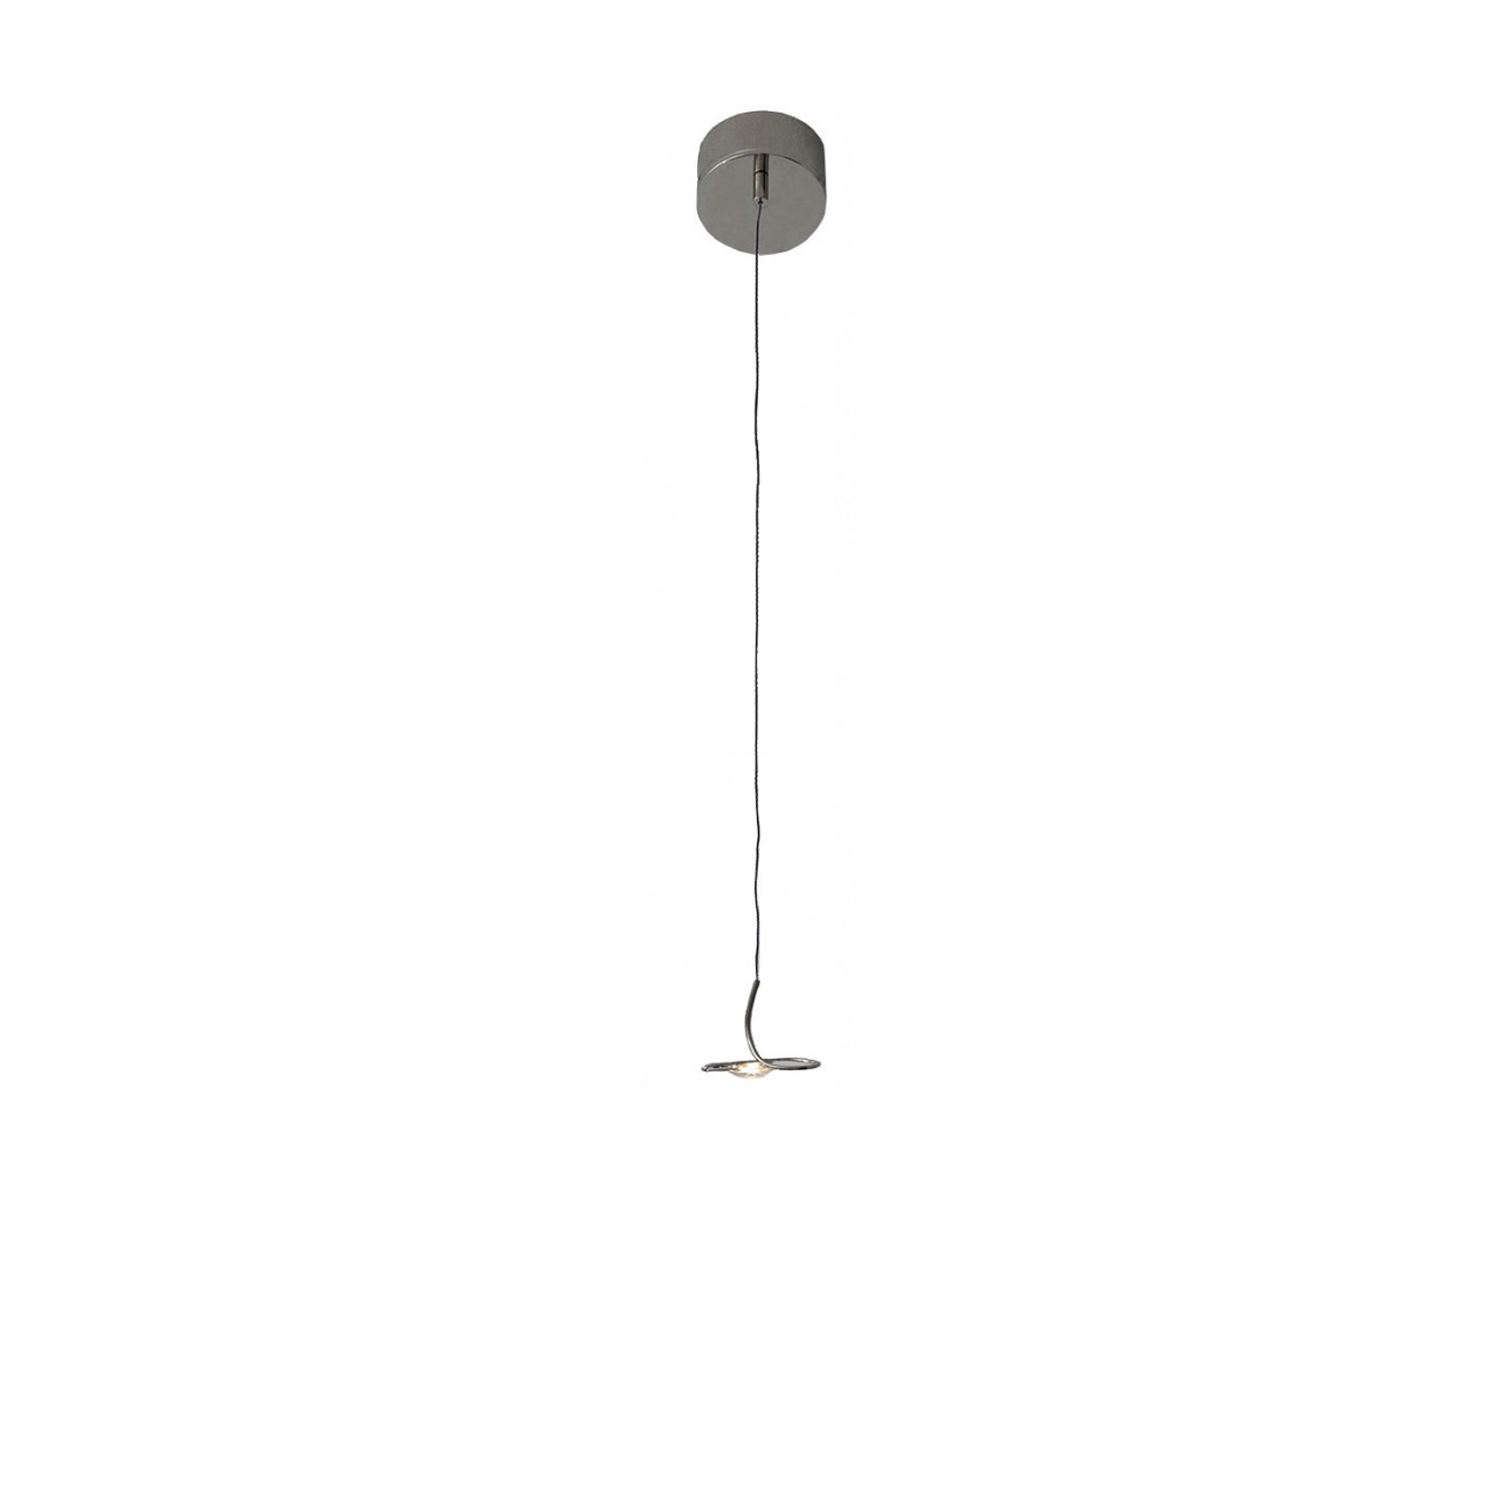 """Jackie O Pendant Lamp - Jackie O was developed at the request of an architect, who wanted to place the """"Wa Wa"""" light over a large table. While working on the project, Enzo Catellani realised the unique quality of the item he had in his hands. He strived once again to achieve """"absolute zero"""" and hoped even to eliminate the cable, which he did so by developing, for the very first time, an extremely thin cable covered in blue fabric, later also used in other items. 